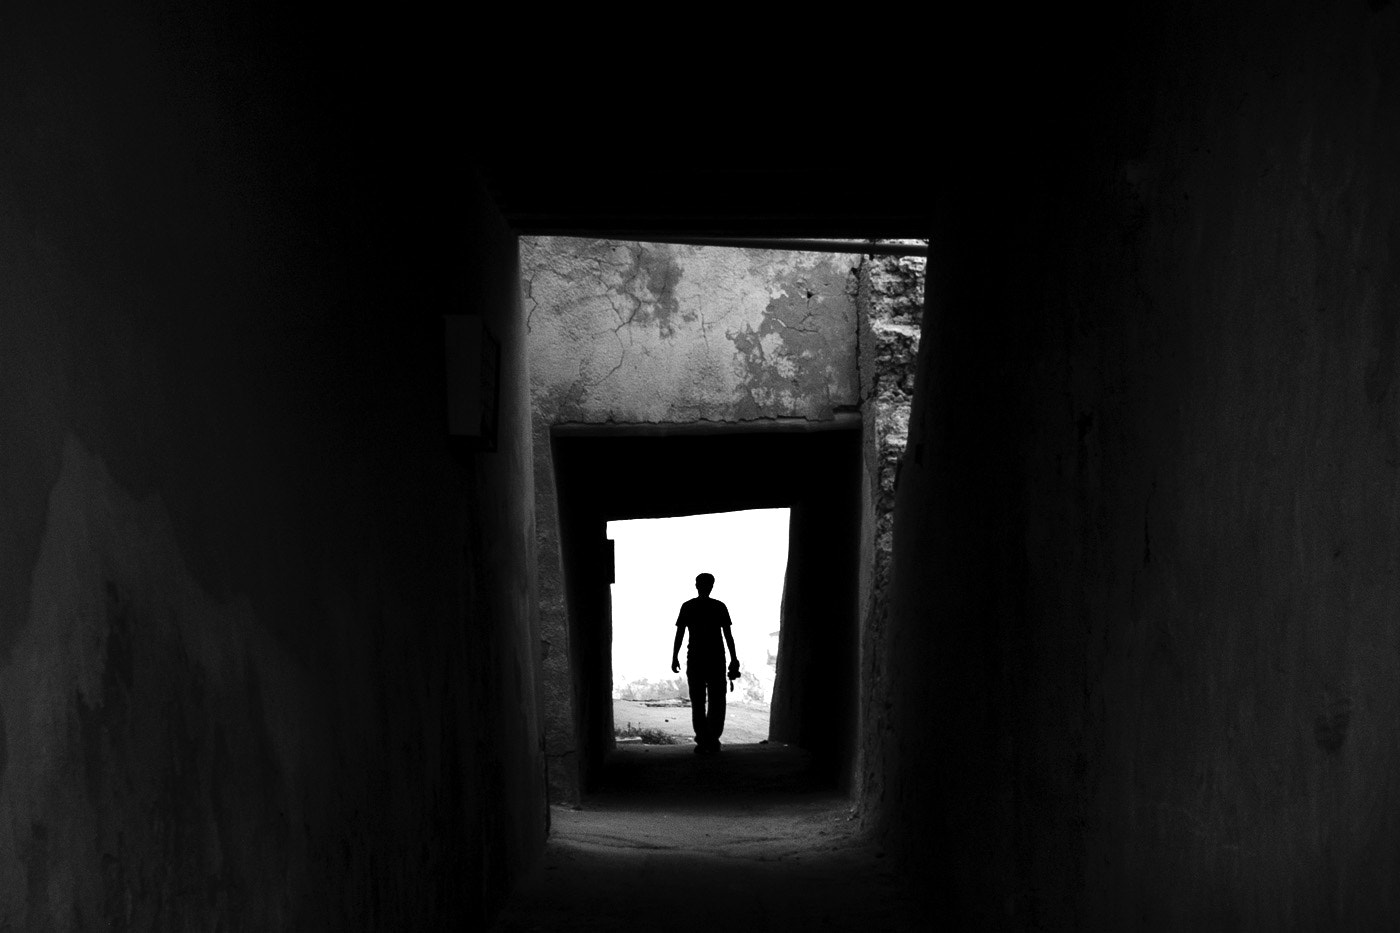 Photograph Walking Away by Zuhair Ahmad on 500px